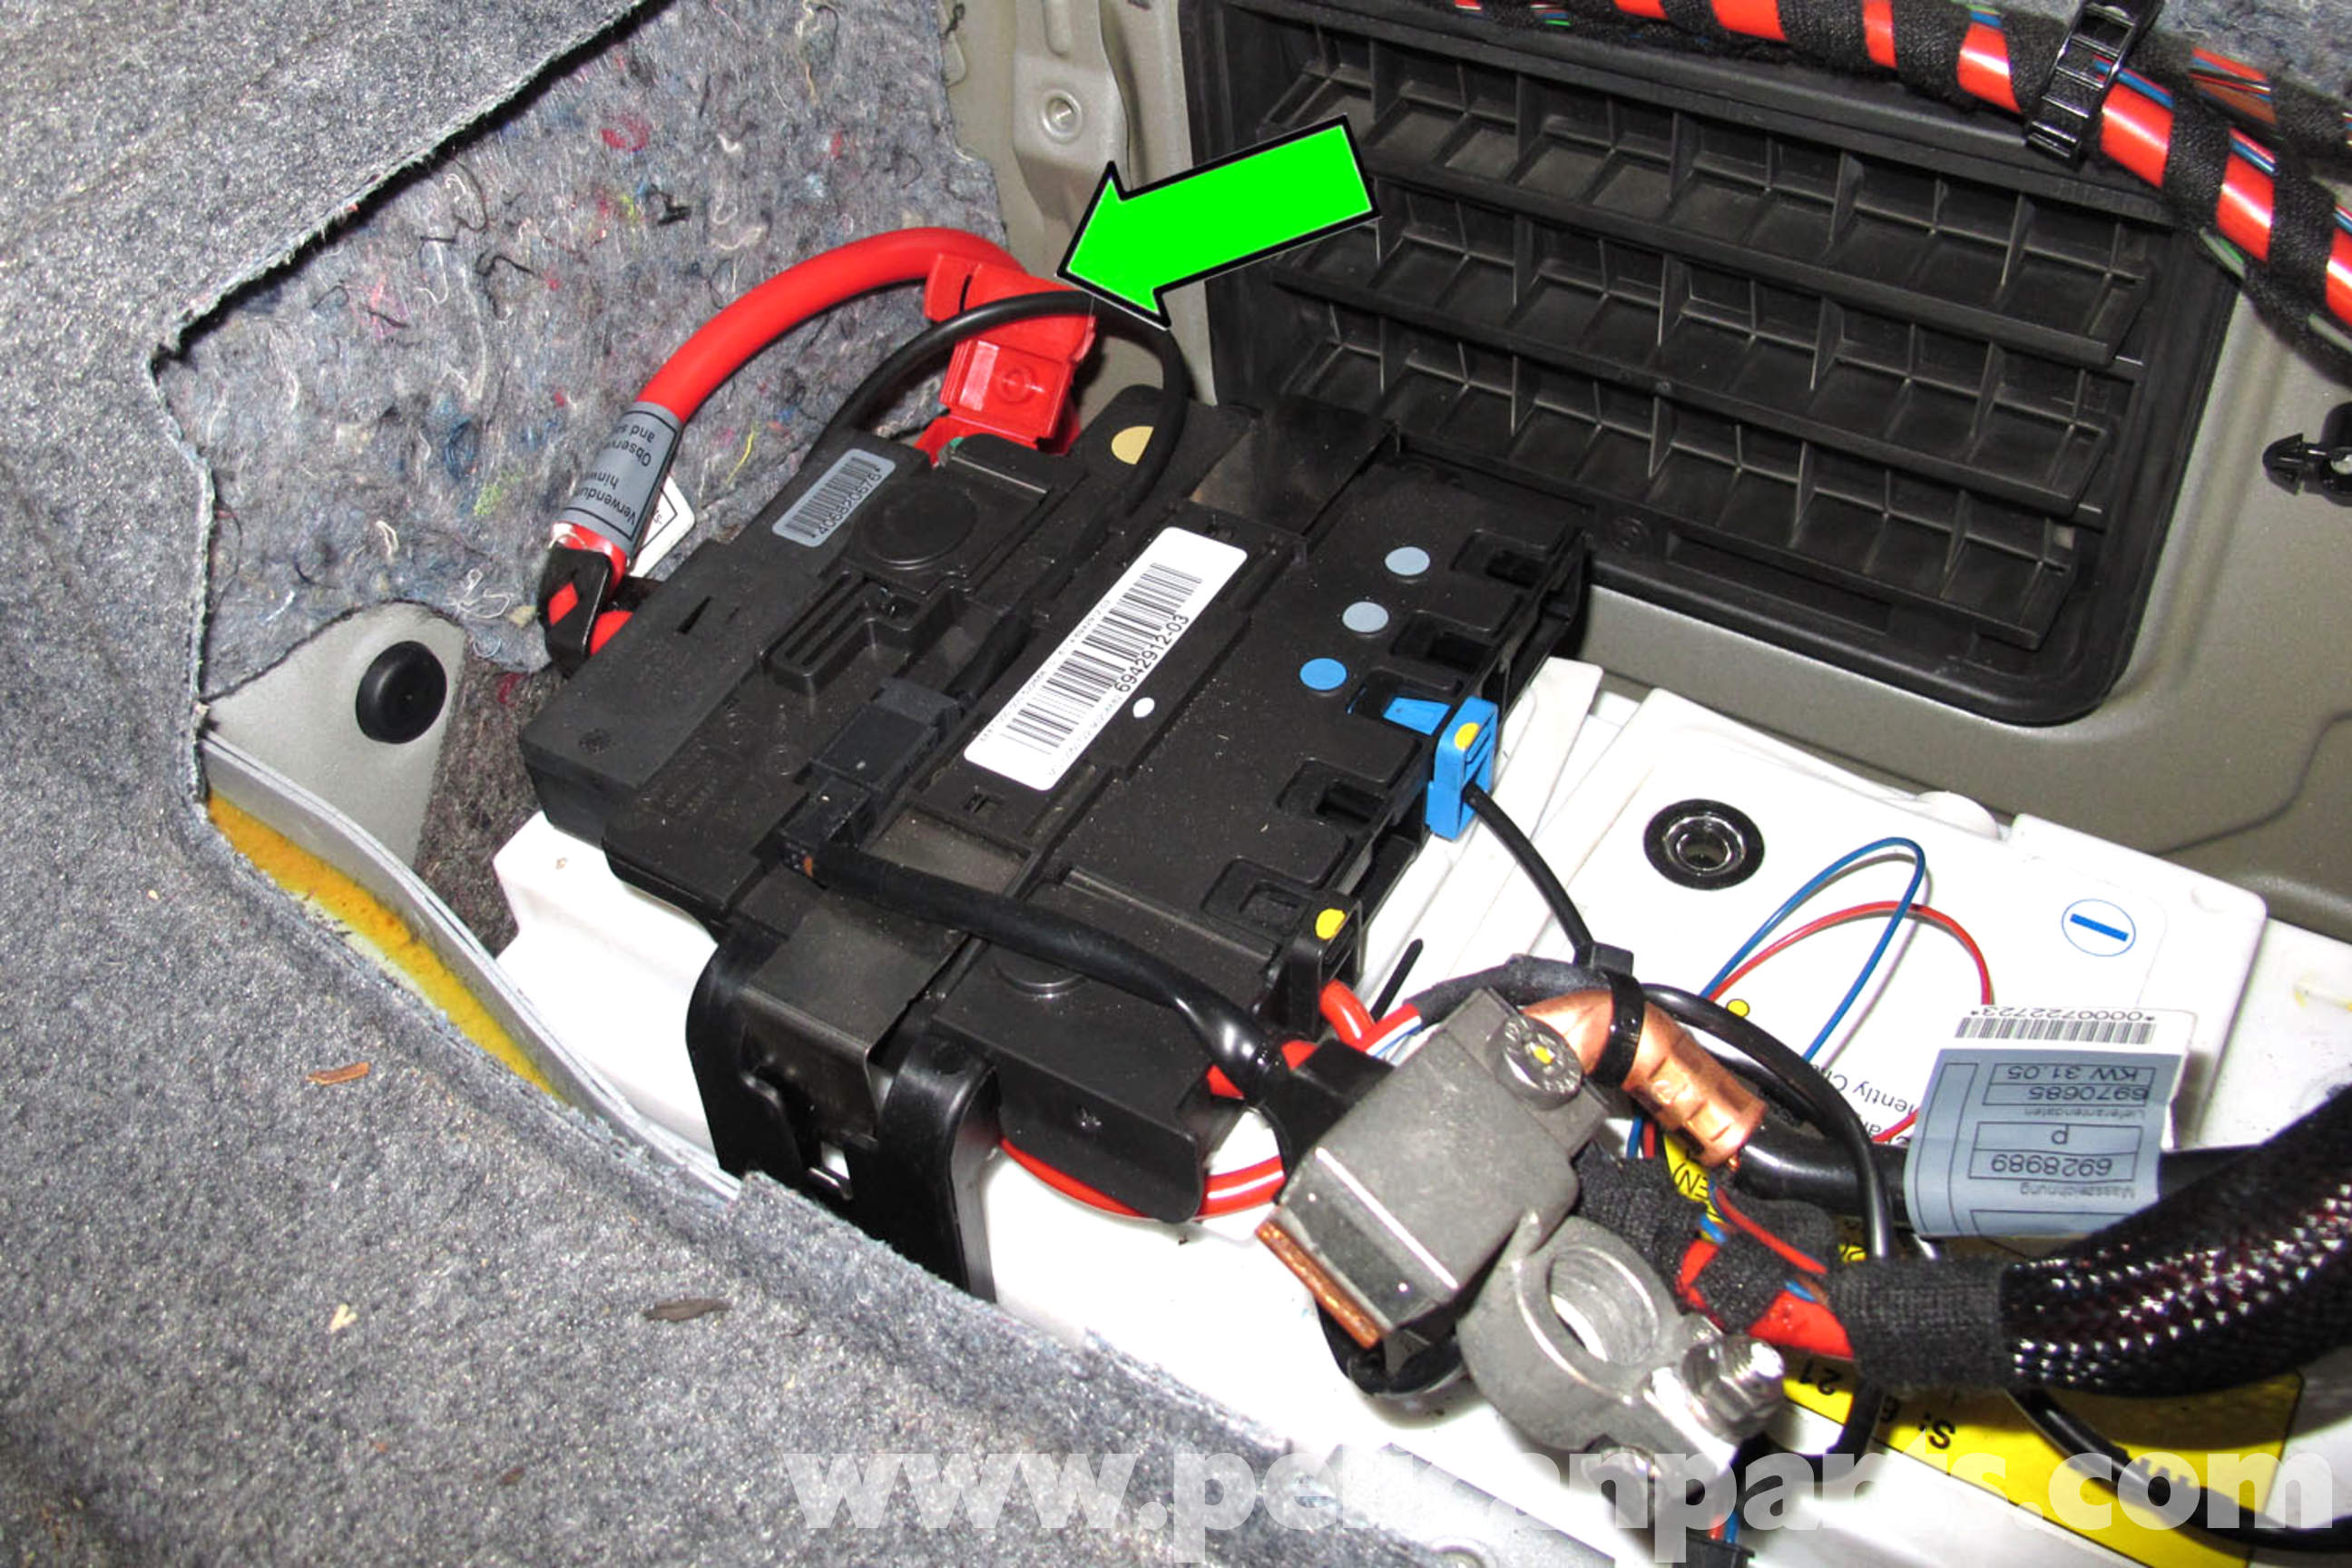 bmw e92 radio wiring diagram 2003 chevy s10 diagrams e90 battery replacement | e91, e92, e93 pelican parts diy maintenance article